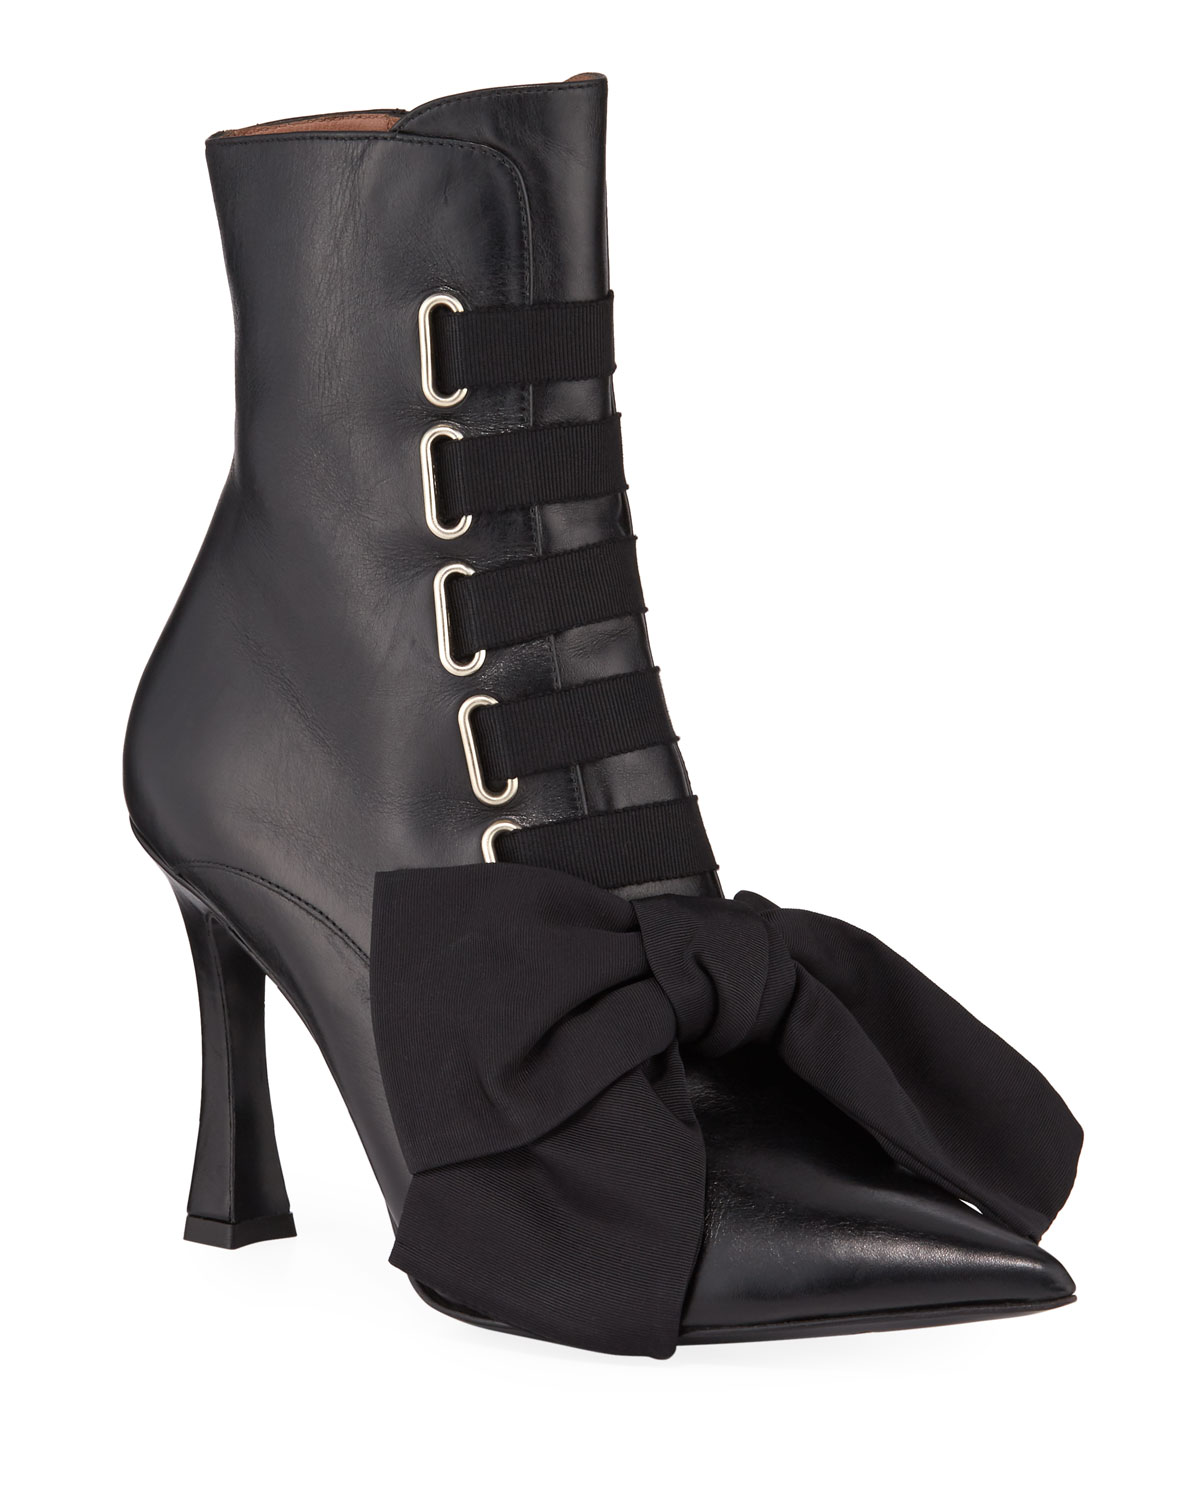 Tabitha Simmons Boots FARDEN LACE-UP BOW LEATHER BOOTIES